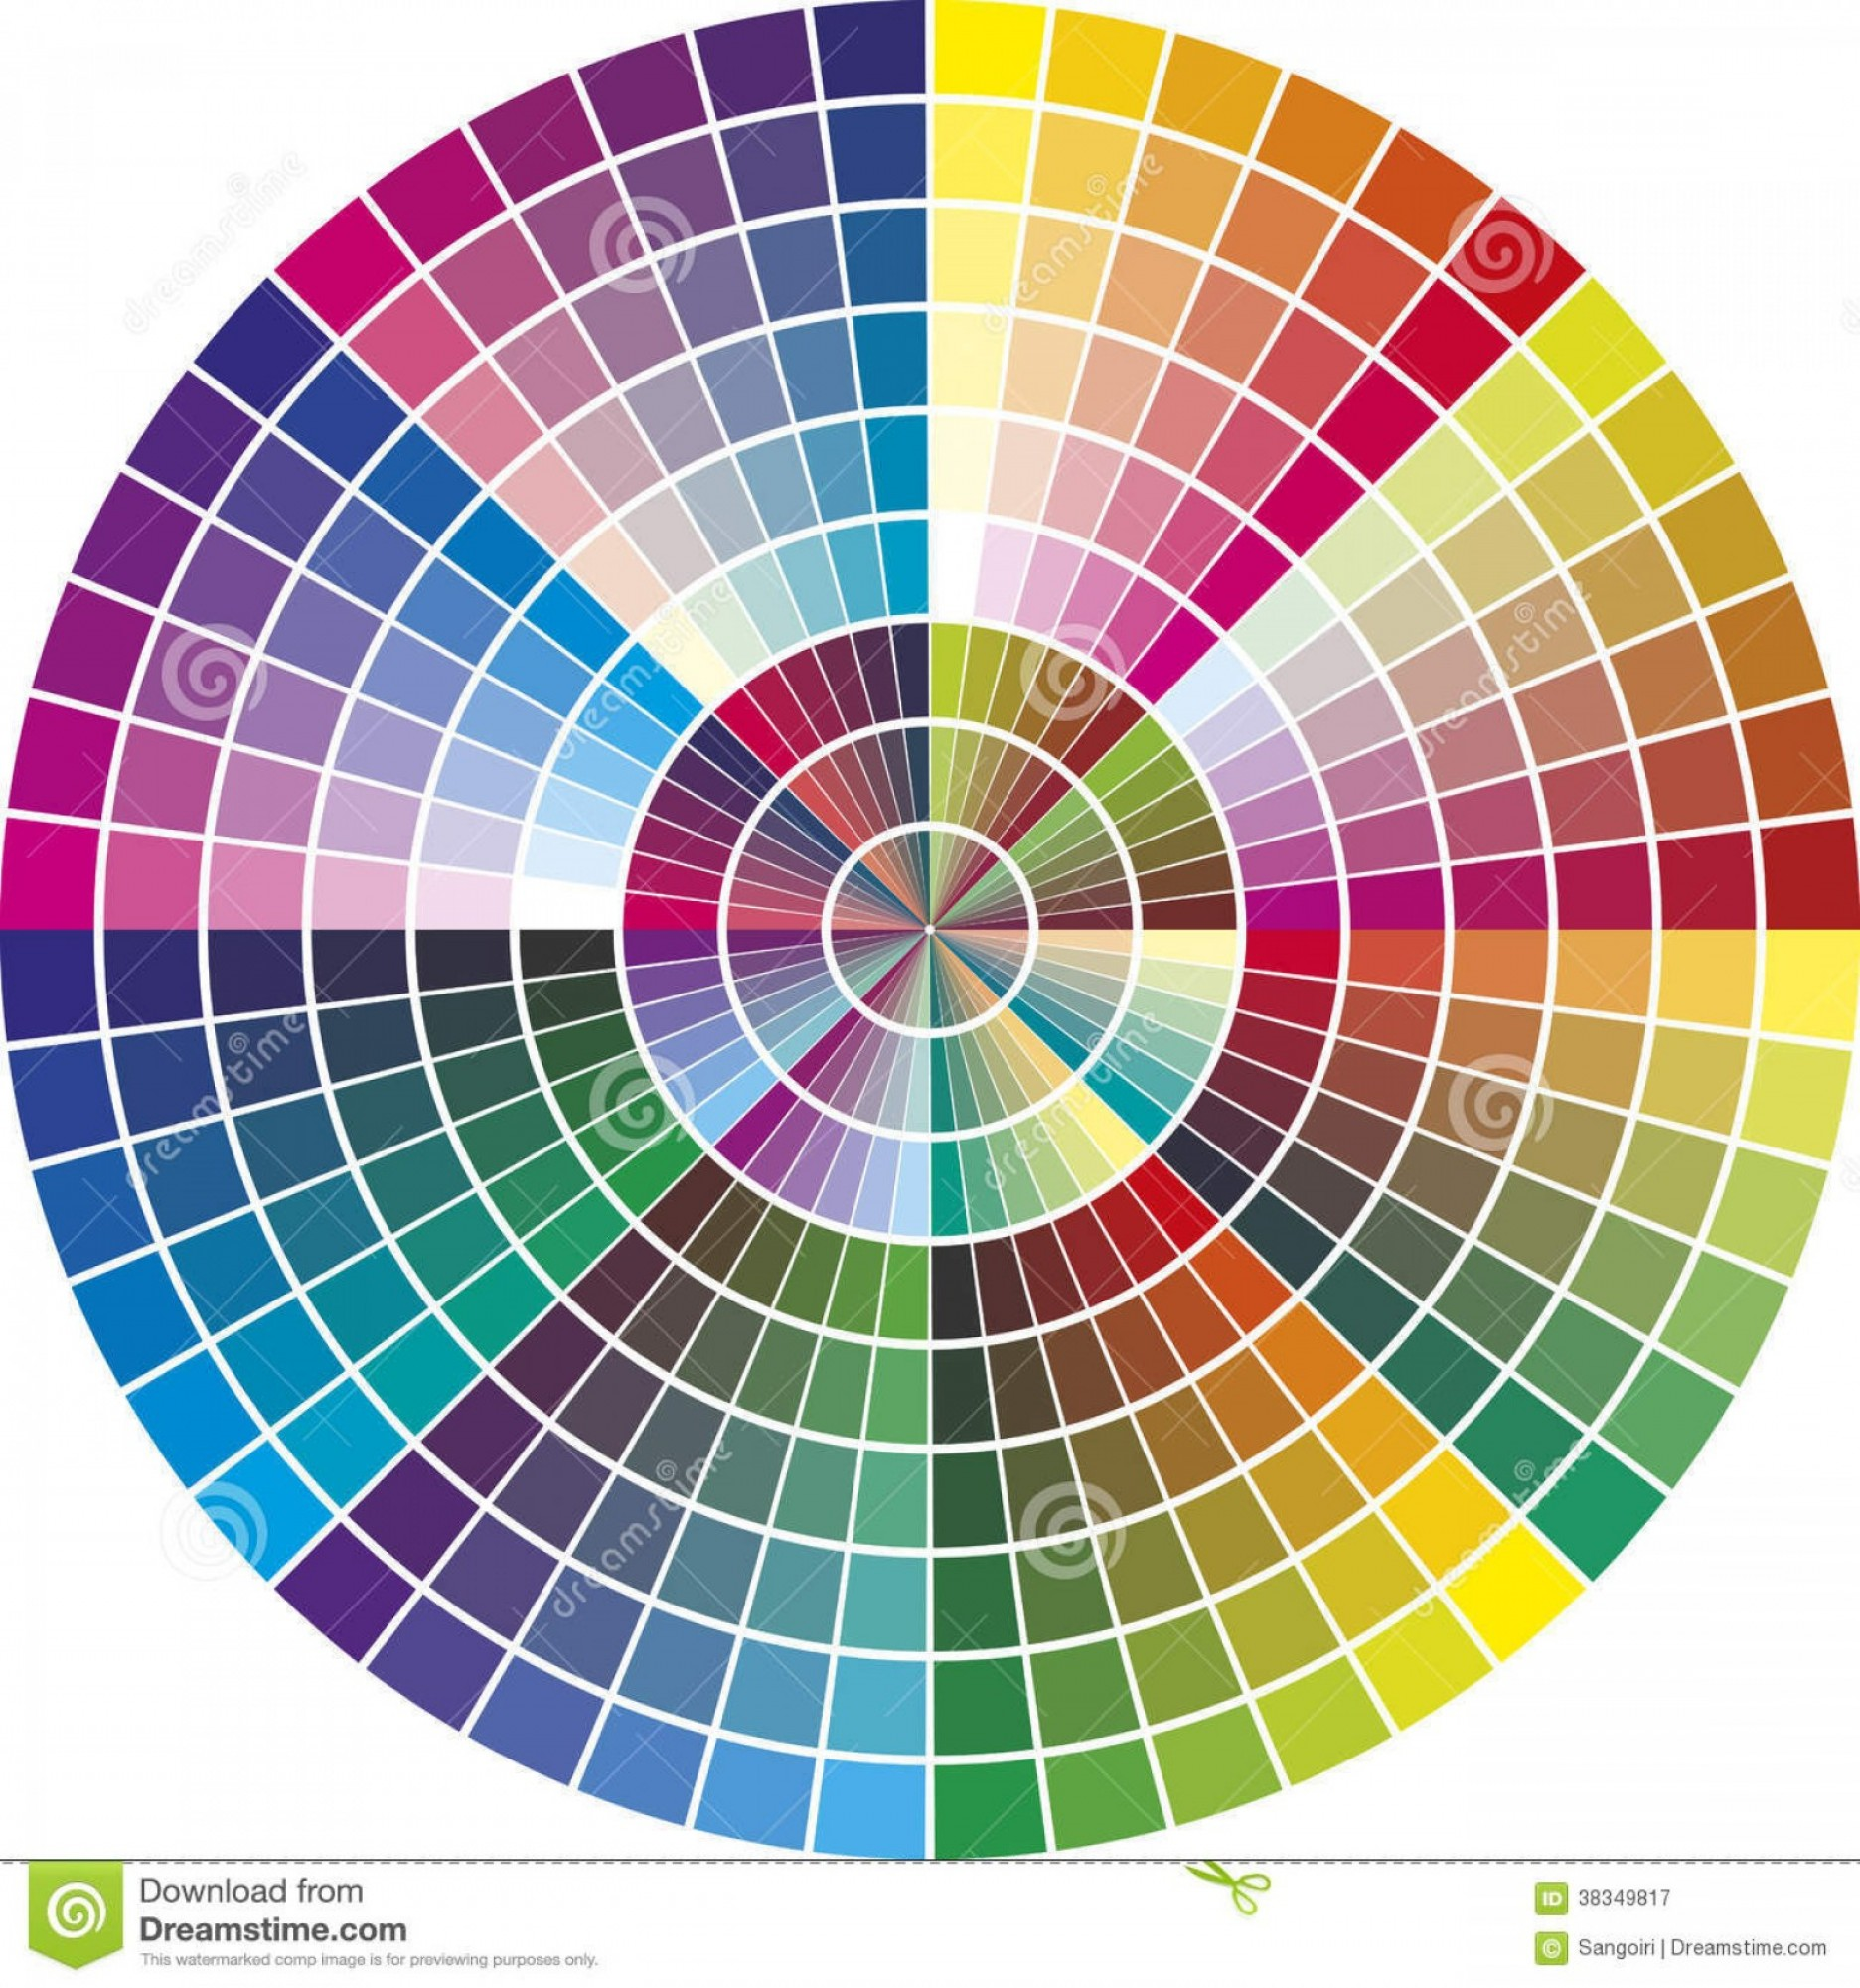 Color CMYK Chart Vector Free: Royalty Free Stock Photography Round Vector Color Chart Printing Industry Different Tones Promotion Advertising Image